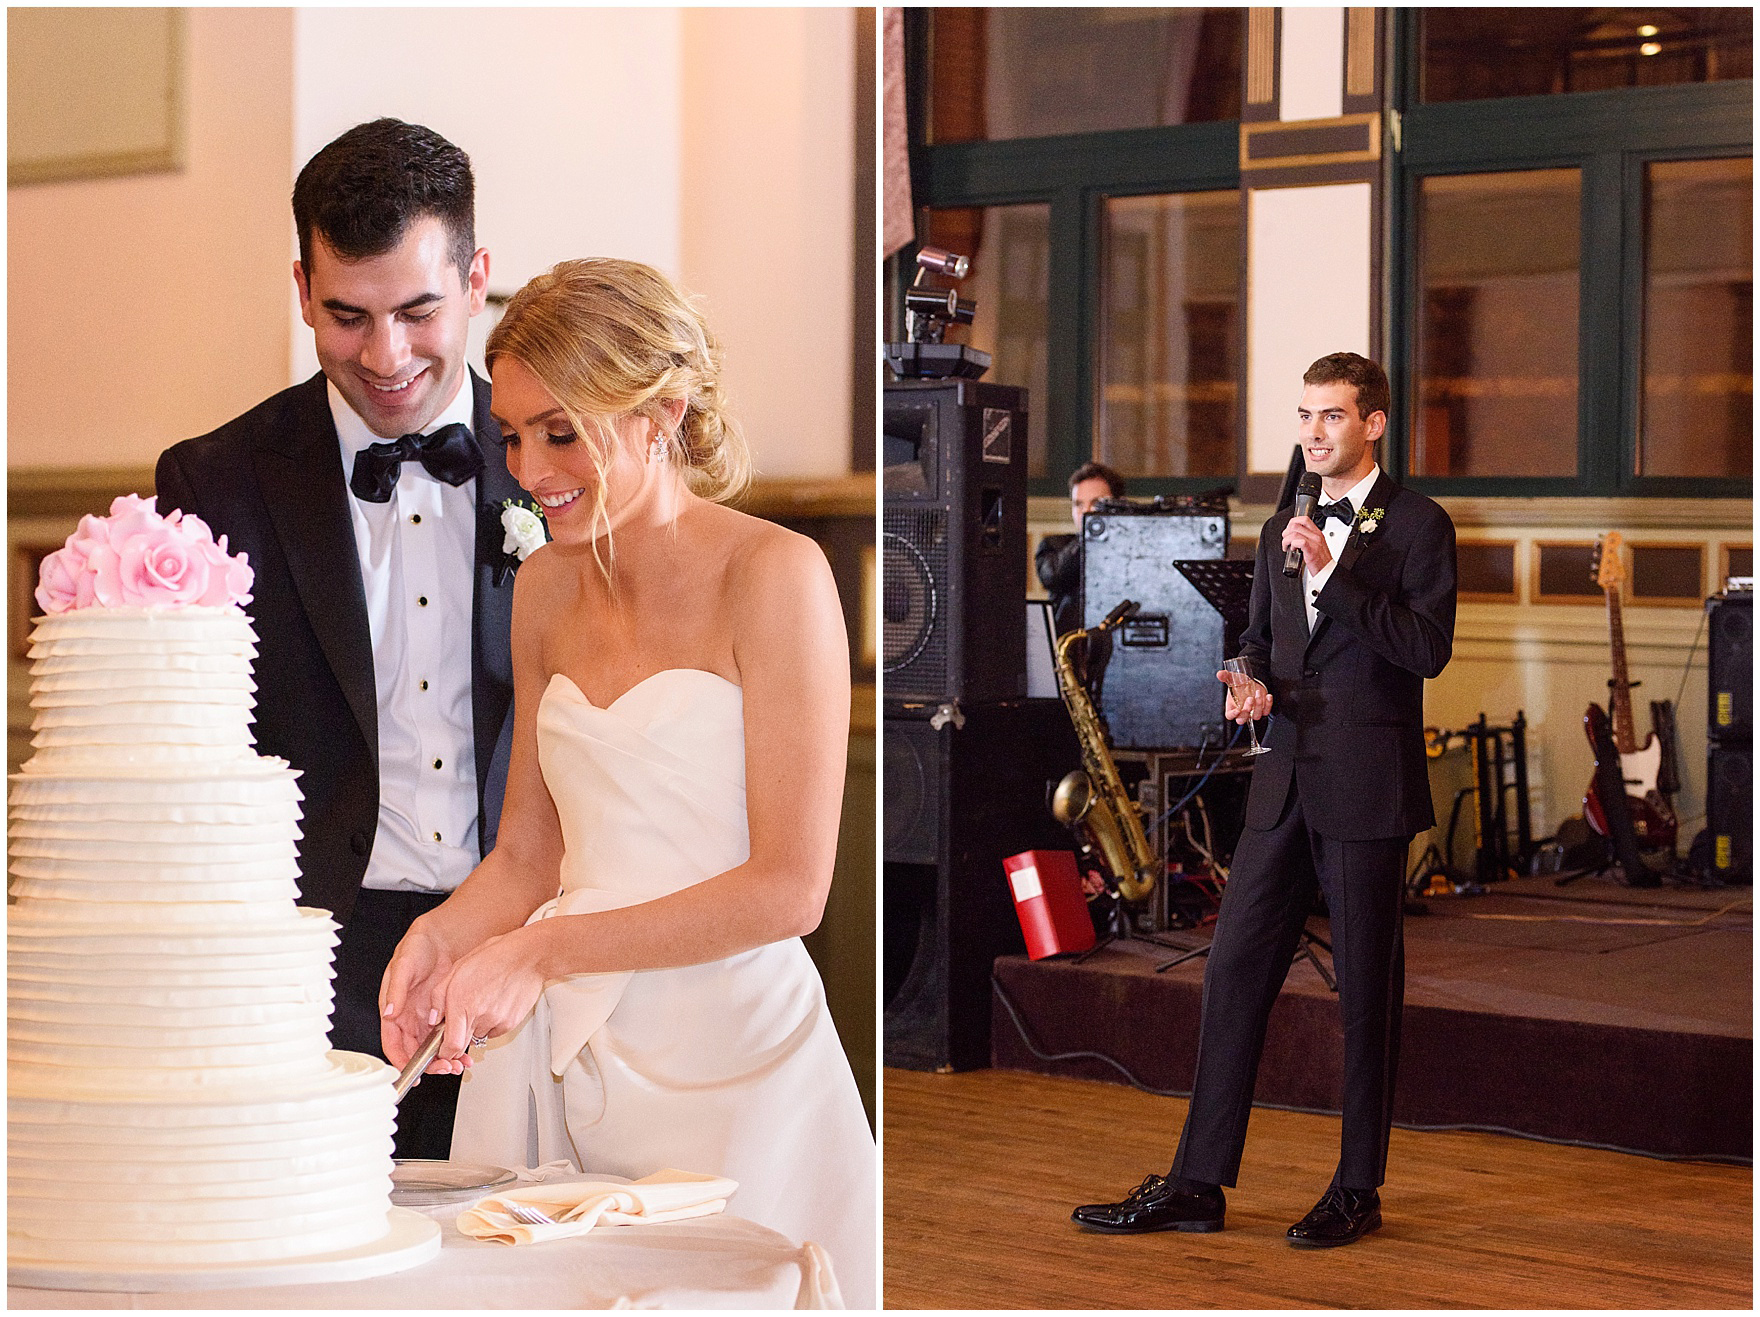 The best man gives a toast during a St. Clement Germania Place Chicago wedding.